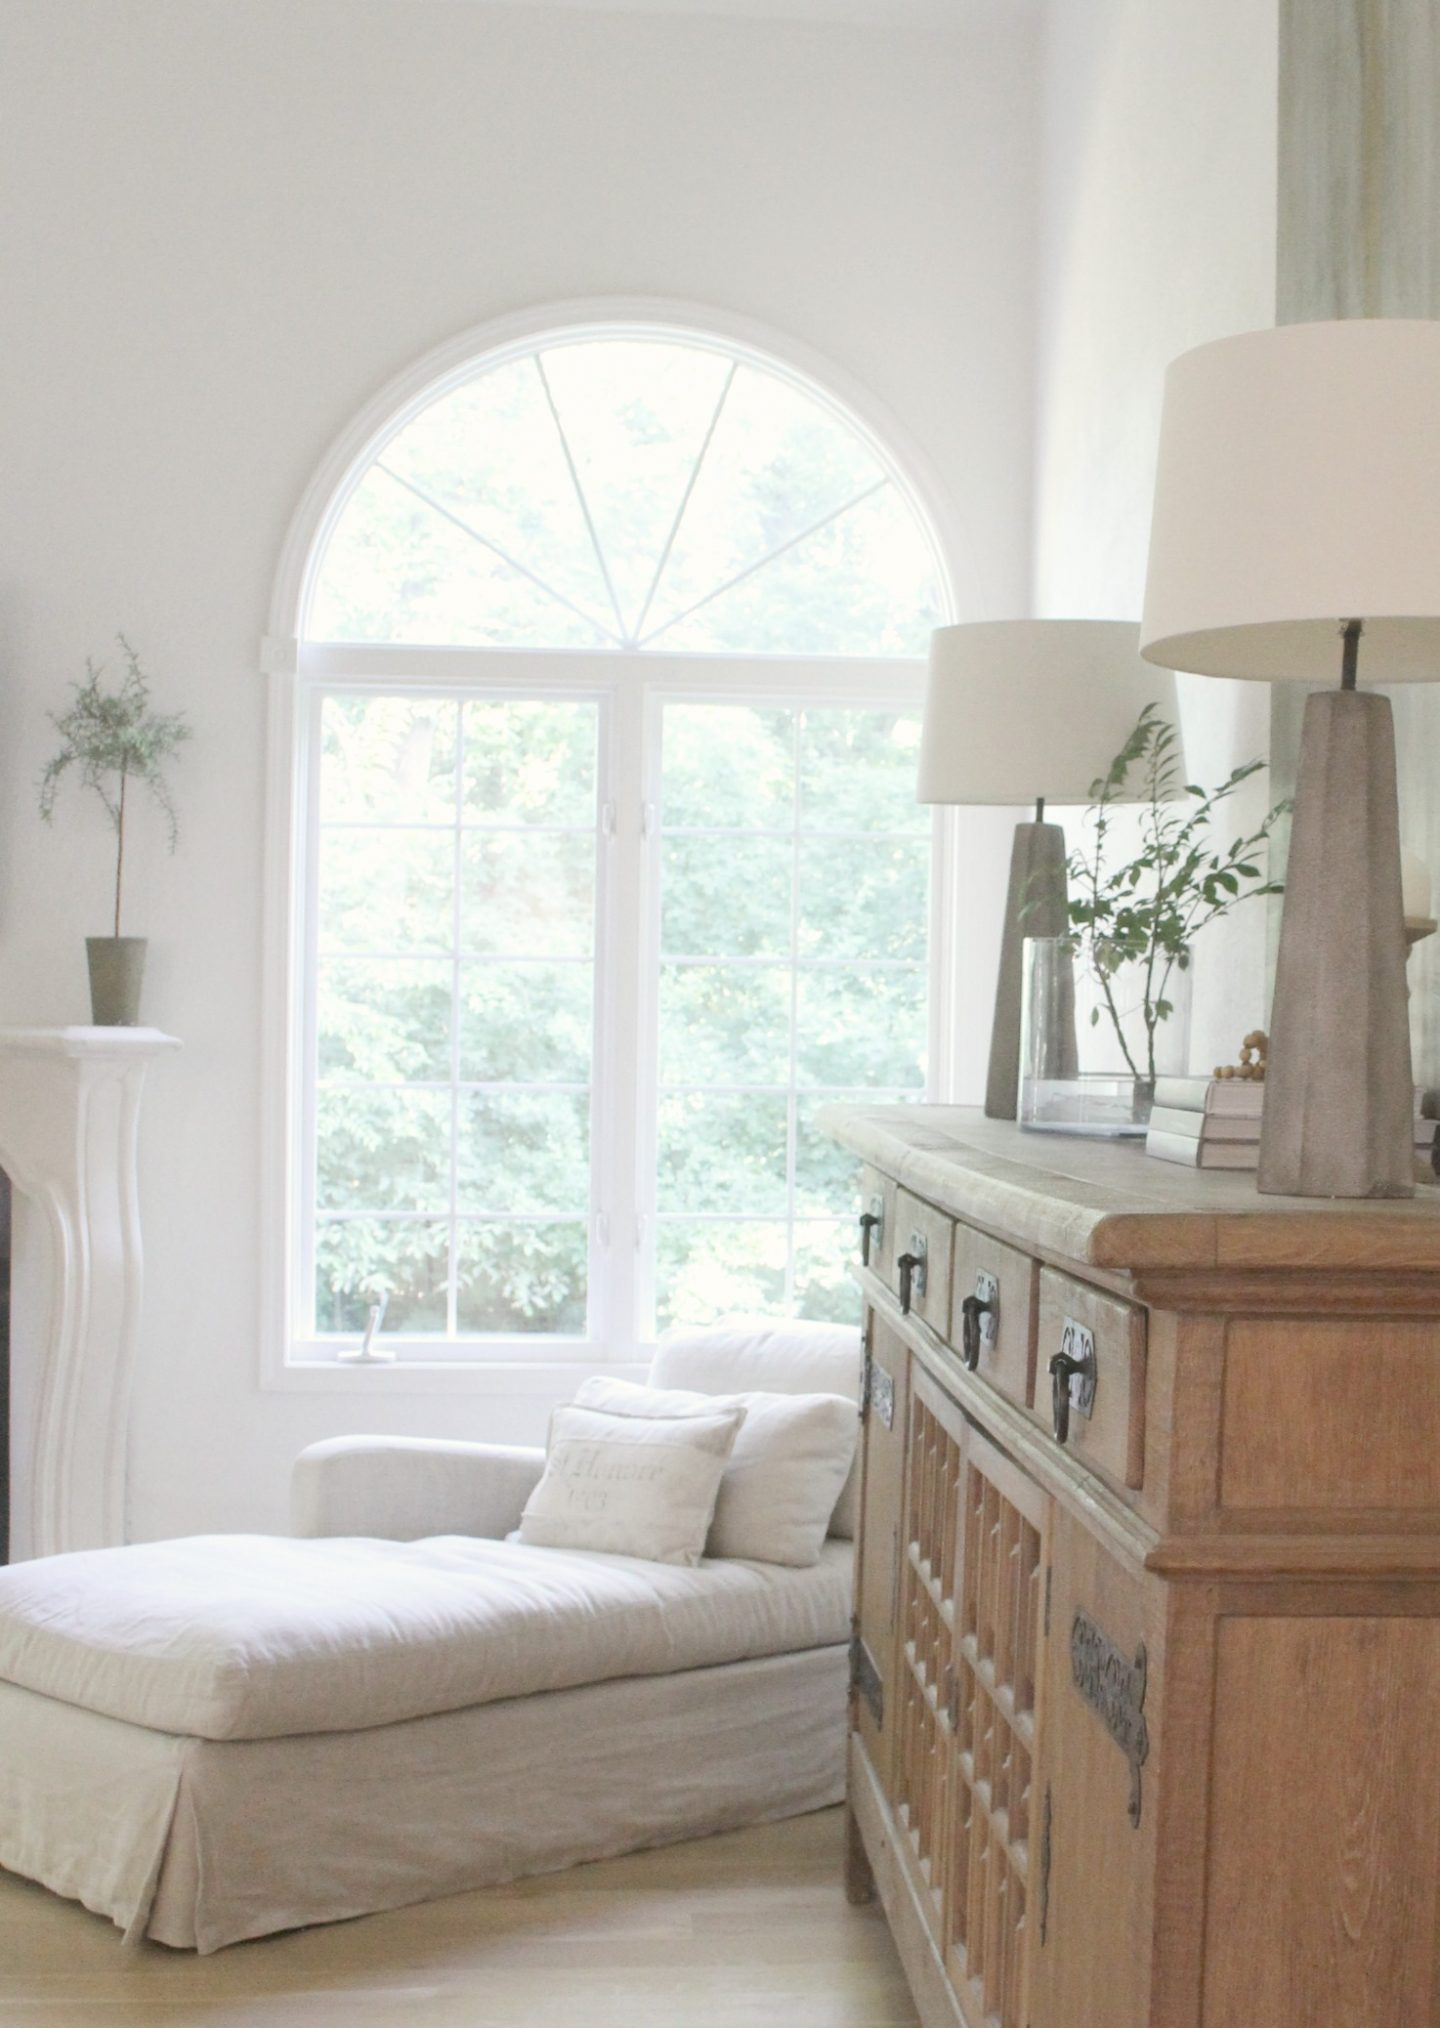 As soon as you step inside, you'll notice the European country influences and my love for white French country decorating! Come shop my house in this story with links to furniture and decor on Hello Lovely Studio. Best of Late Summer 2019 on Hello Lovely...in case you're in the mood for decor inspiration.